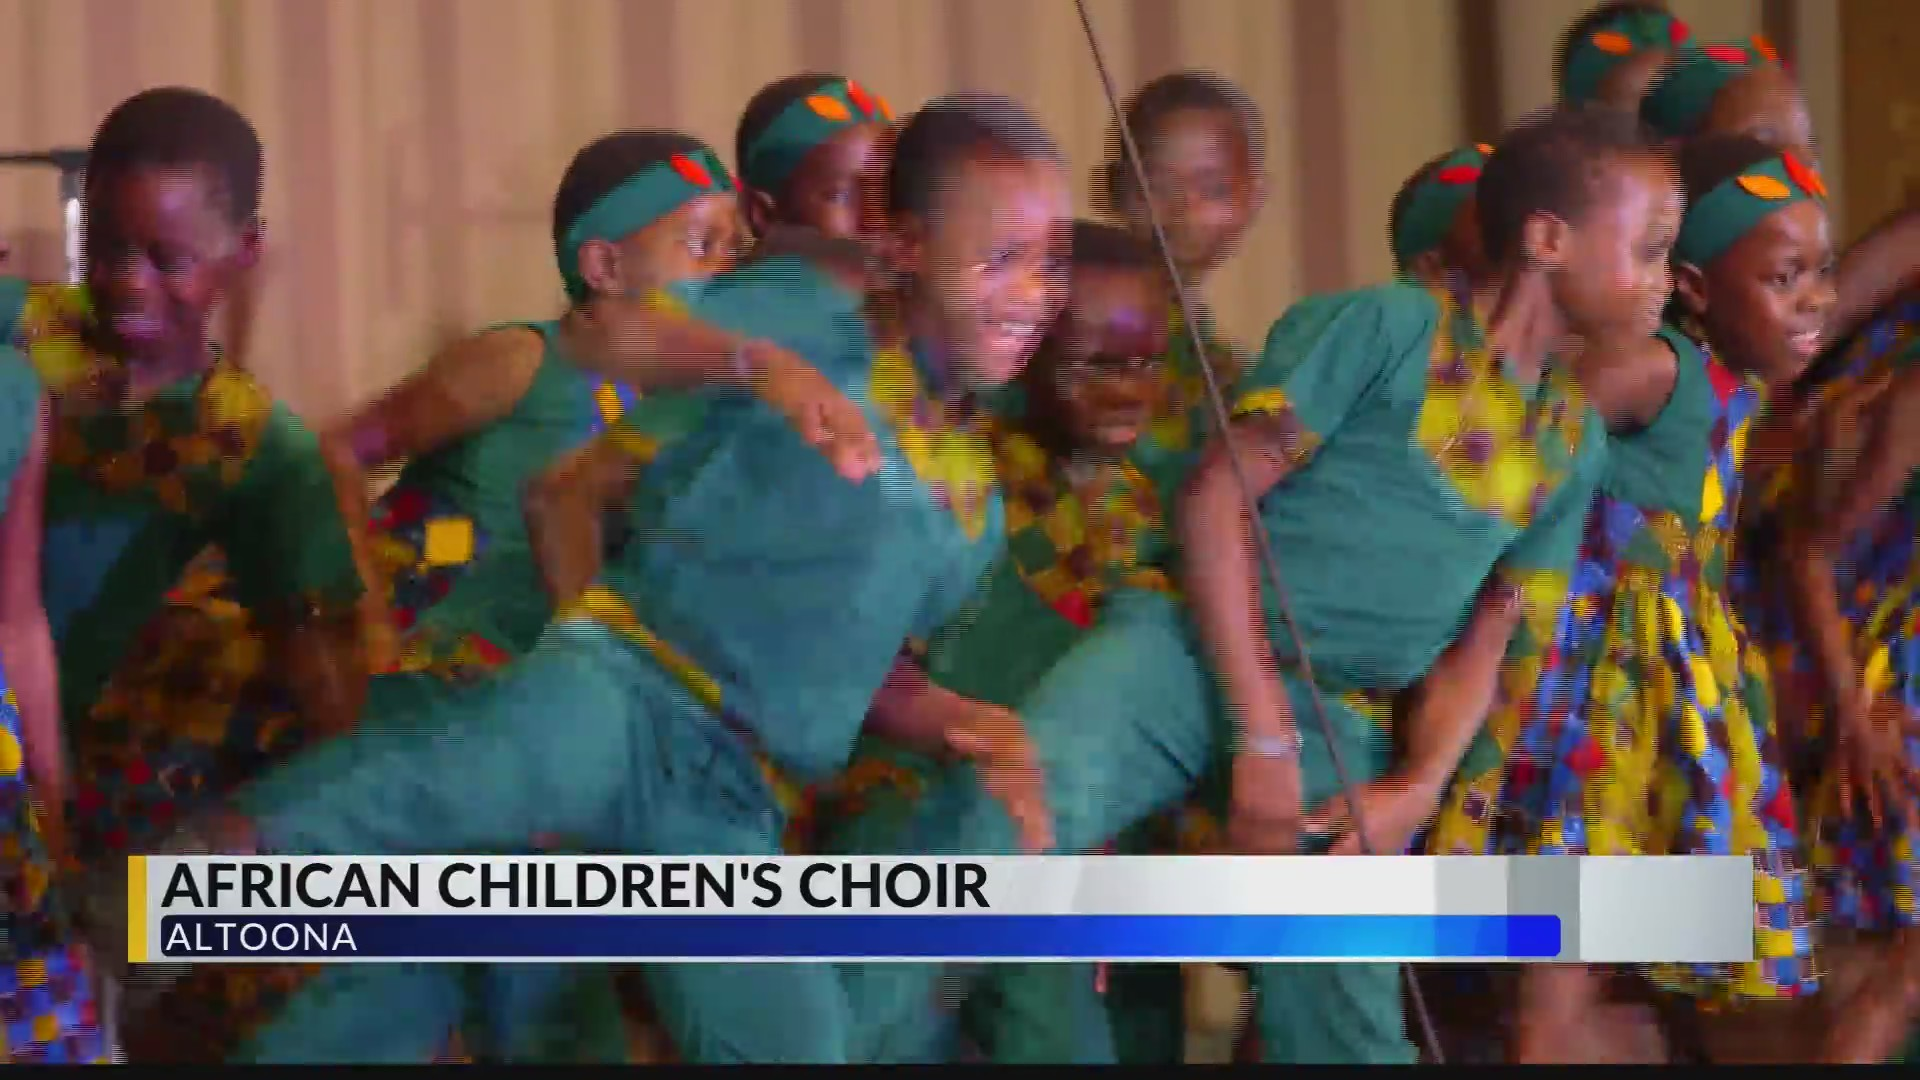 African_Children_s_Choir_coming_to_regio_0_20190531191520